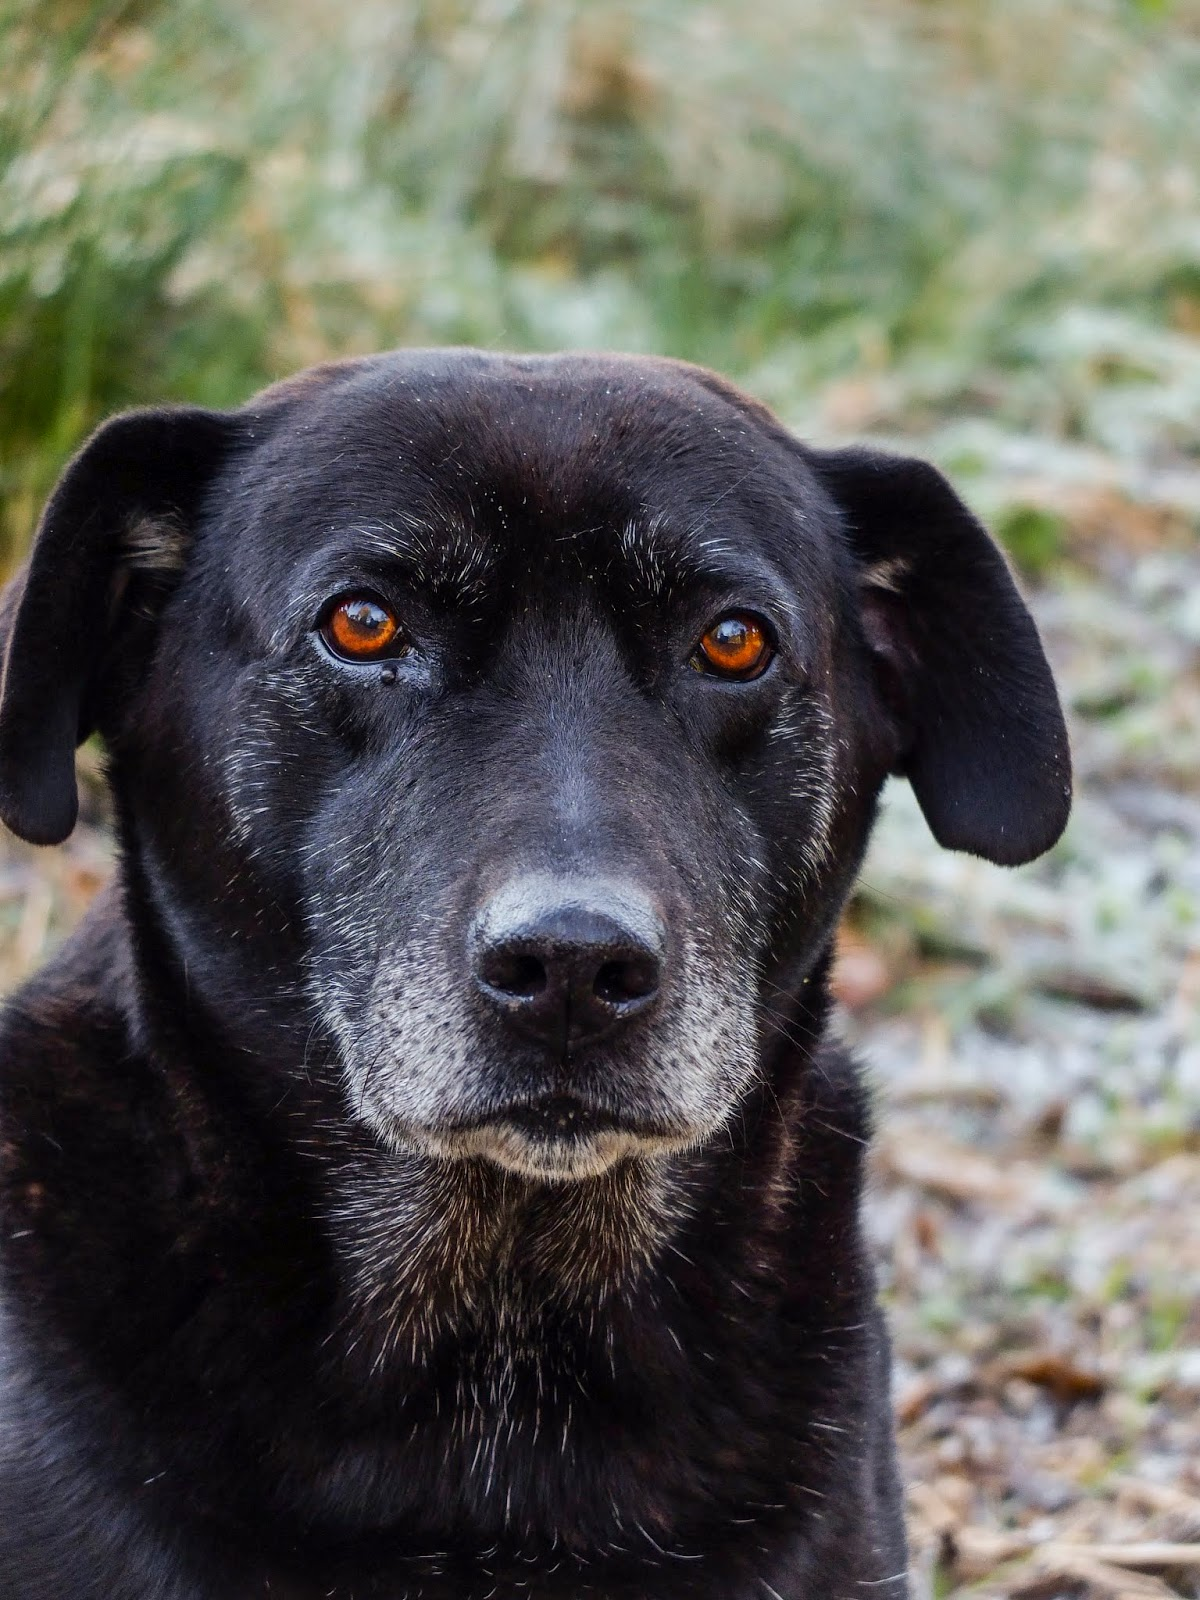 A black Labrador Judy looking straight at the camera with her chestnut eyes.